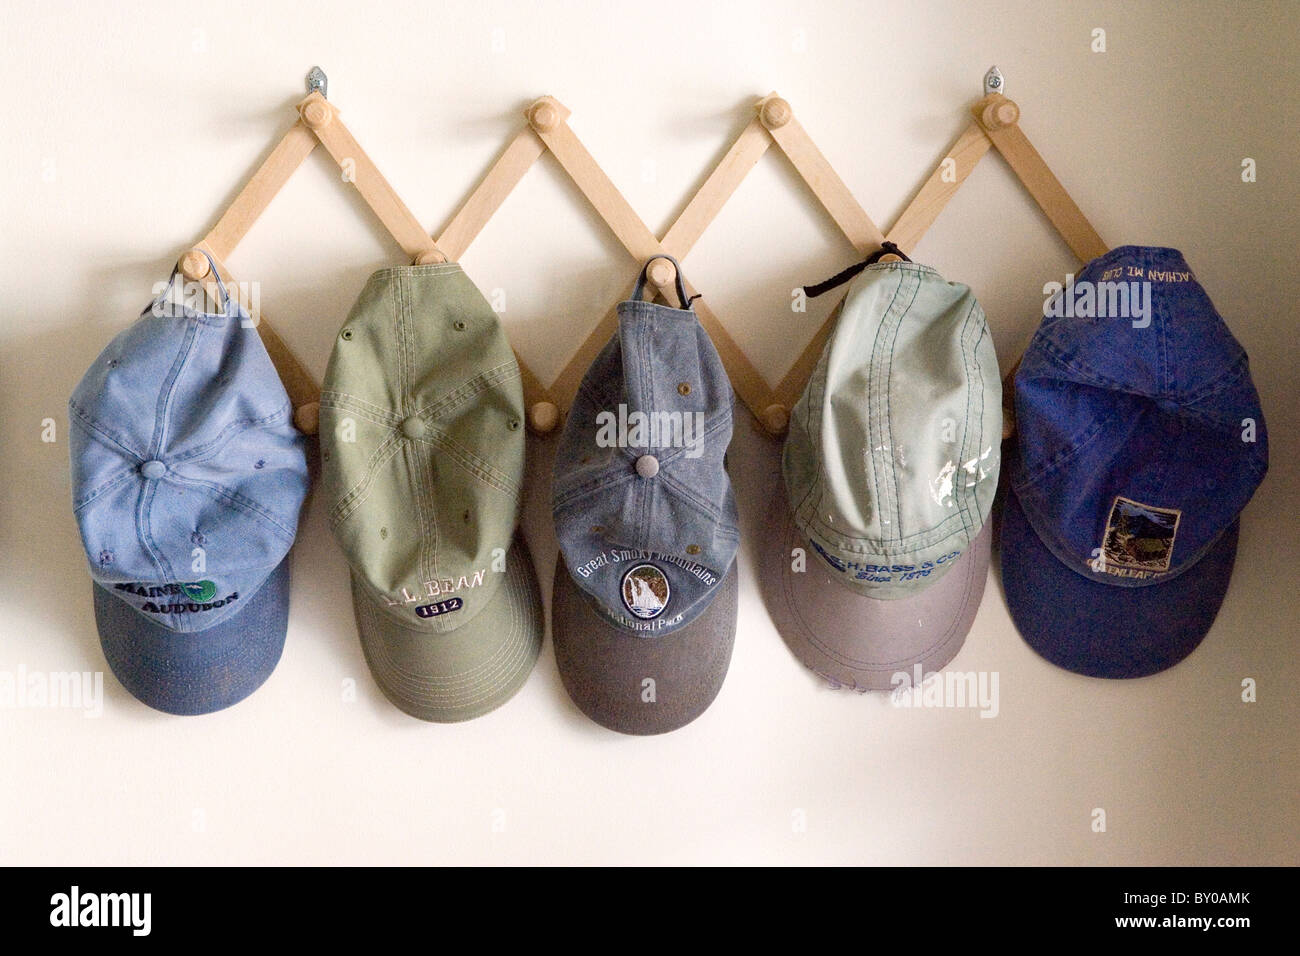 Hats Baseball Stock Photos   Hats Baseball Stock Images - Page 17 ... 1cca6e13fa12